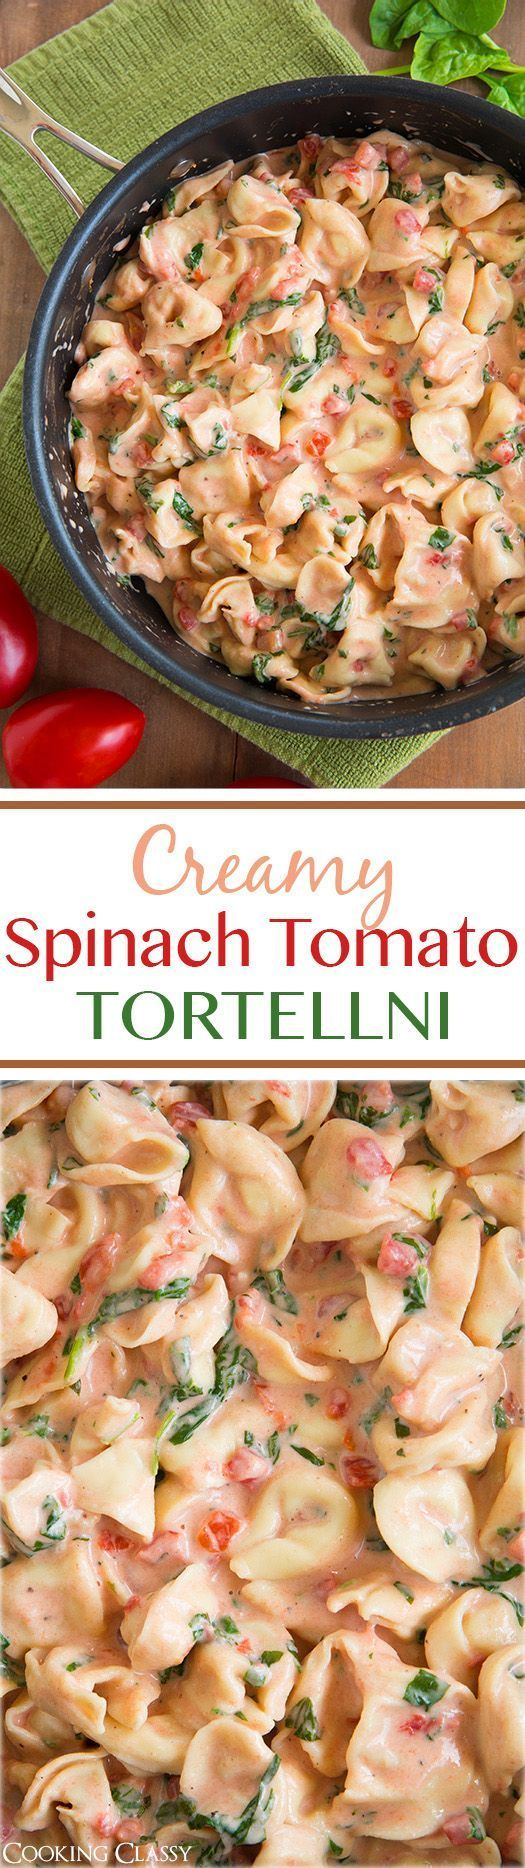 Creamy Spinach Tomato Tortellini - this tastes amazing and it's so easy to make! (Cheese Tortellini Crockpot)